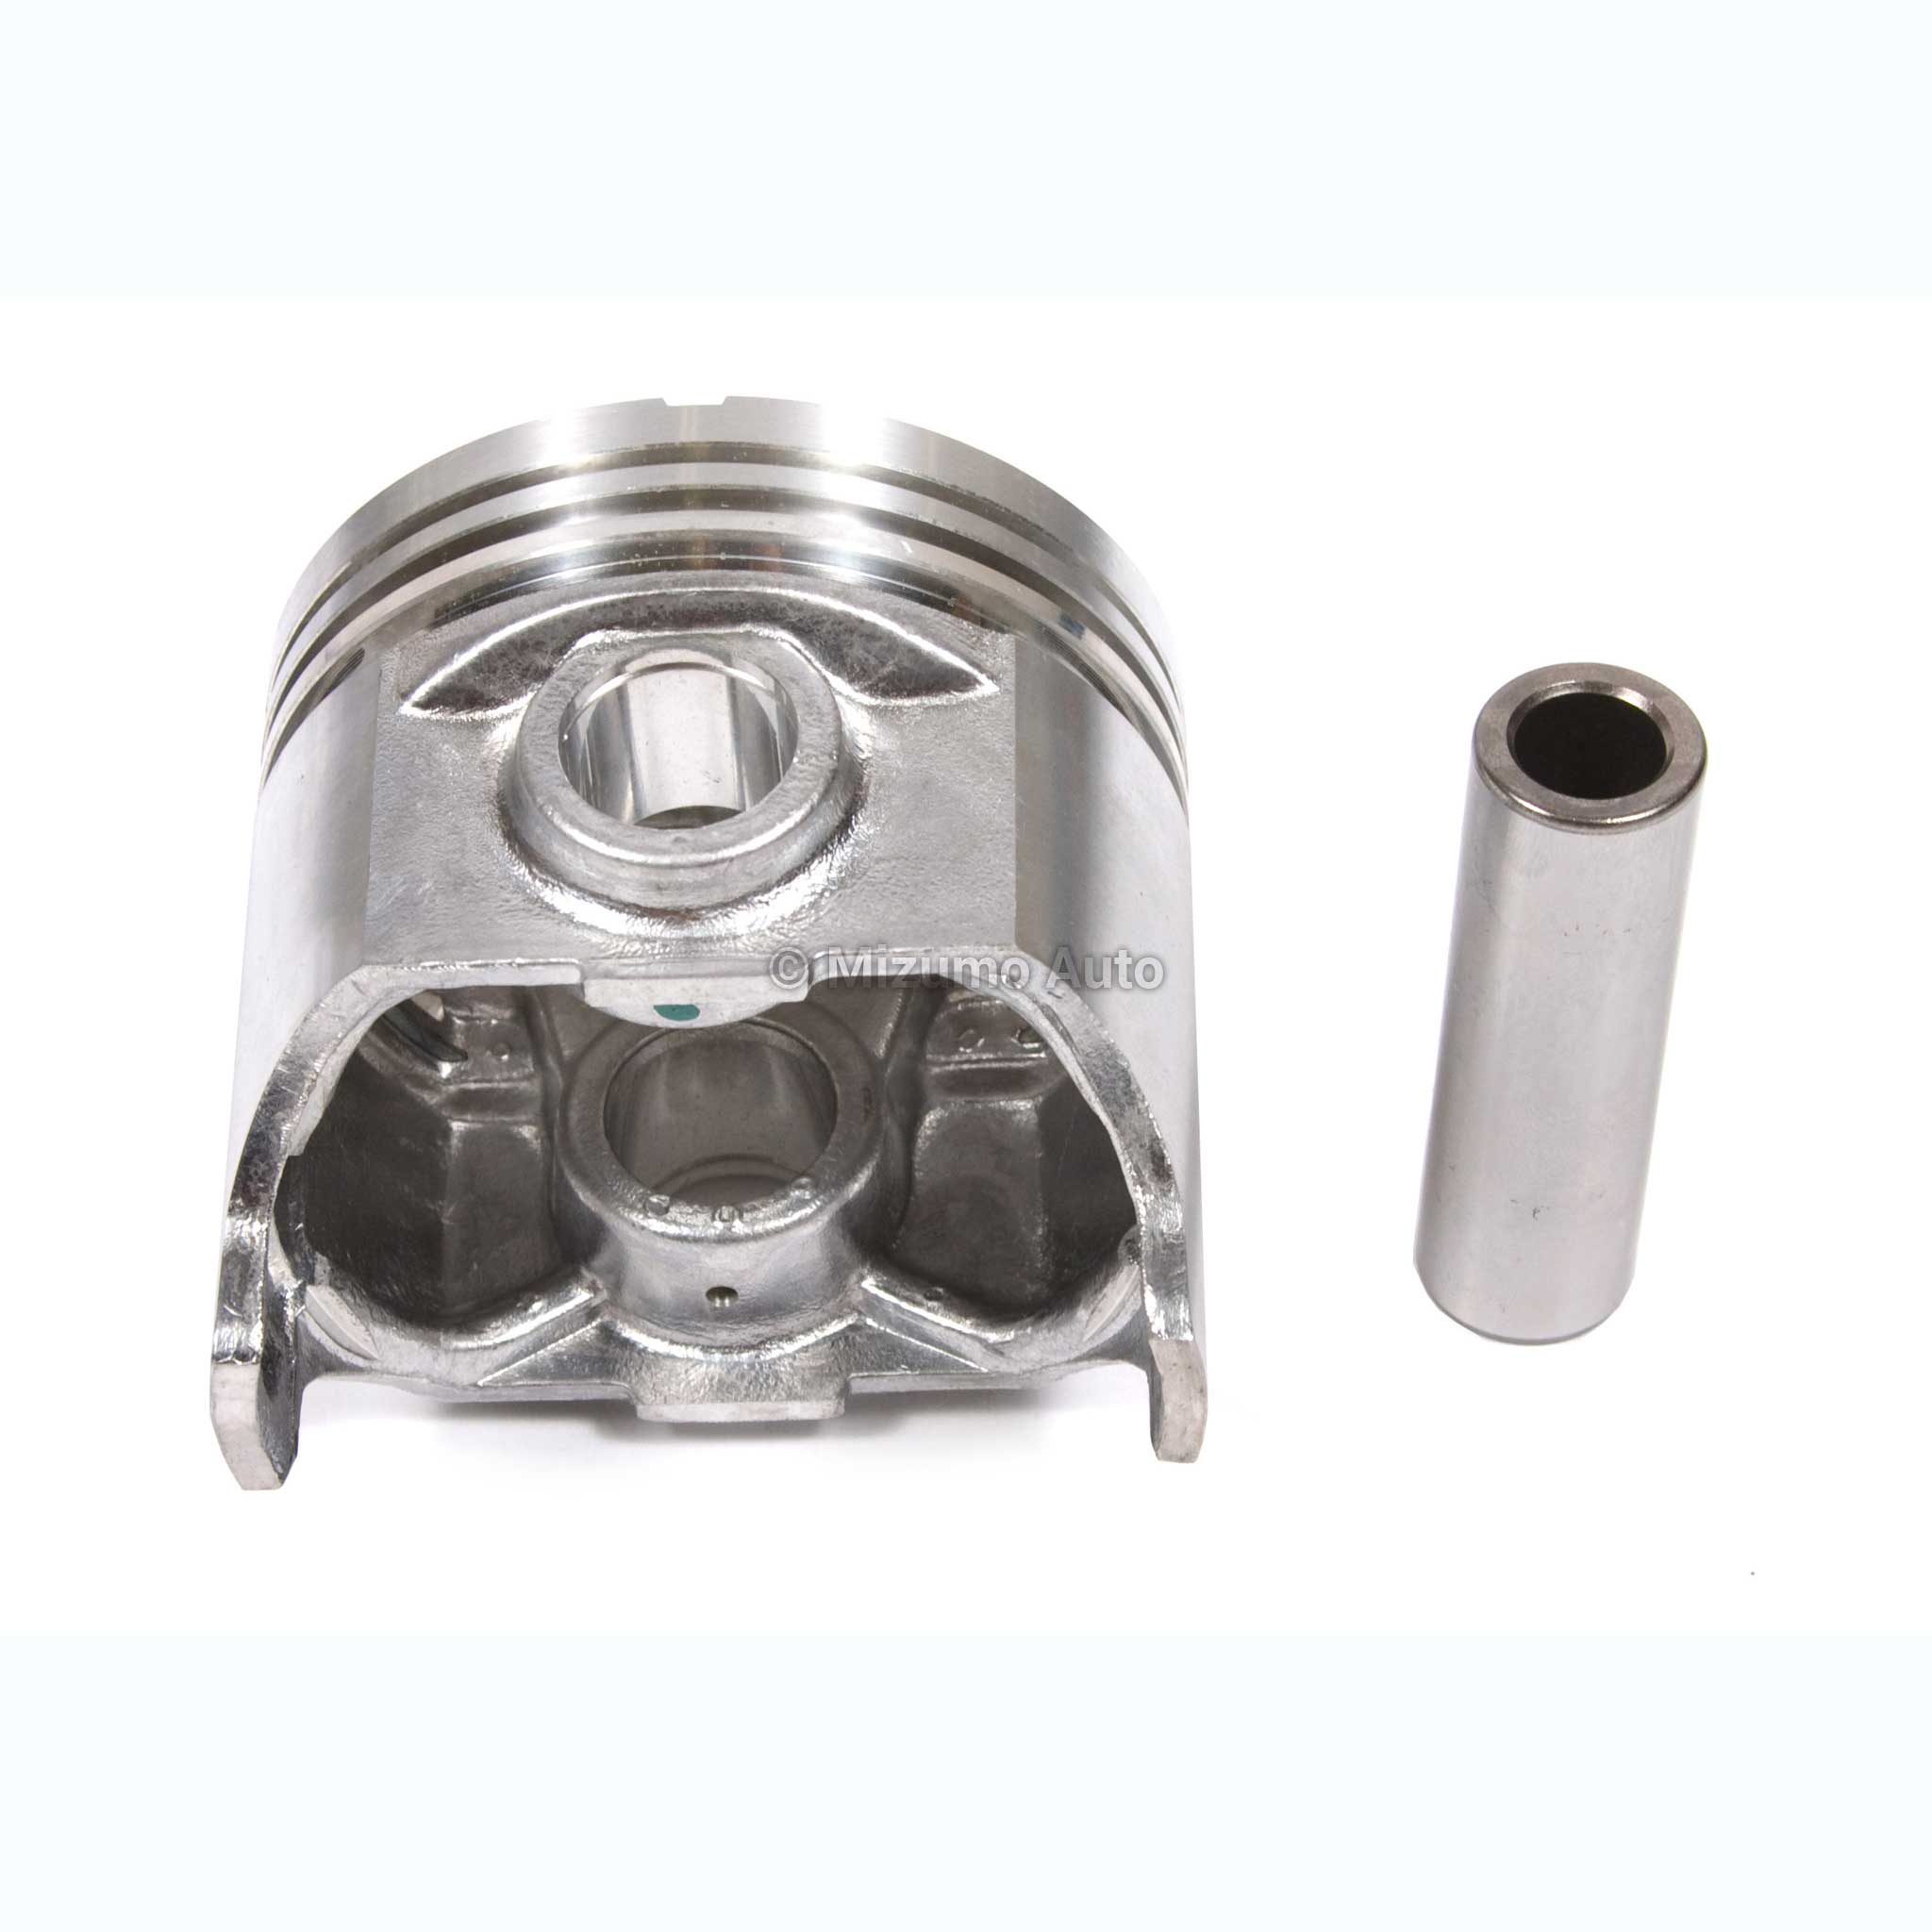 Details about Pistons w/ Rings @0 50mm fit 81-84 Toyota Pickup Celica  4Runner 2 4L 22R 22RE